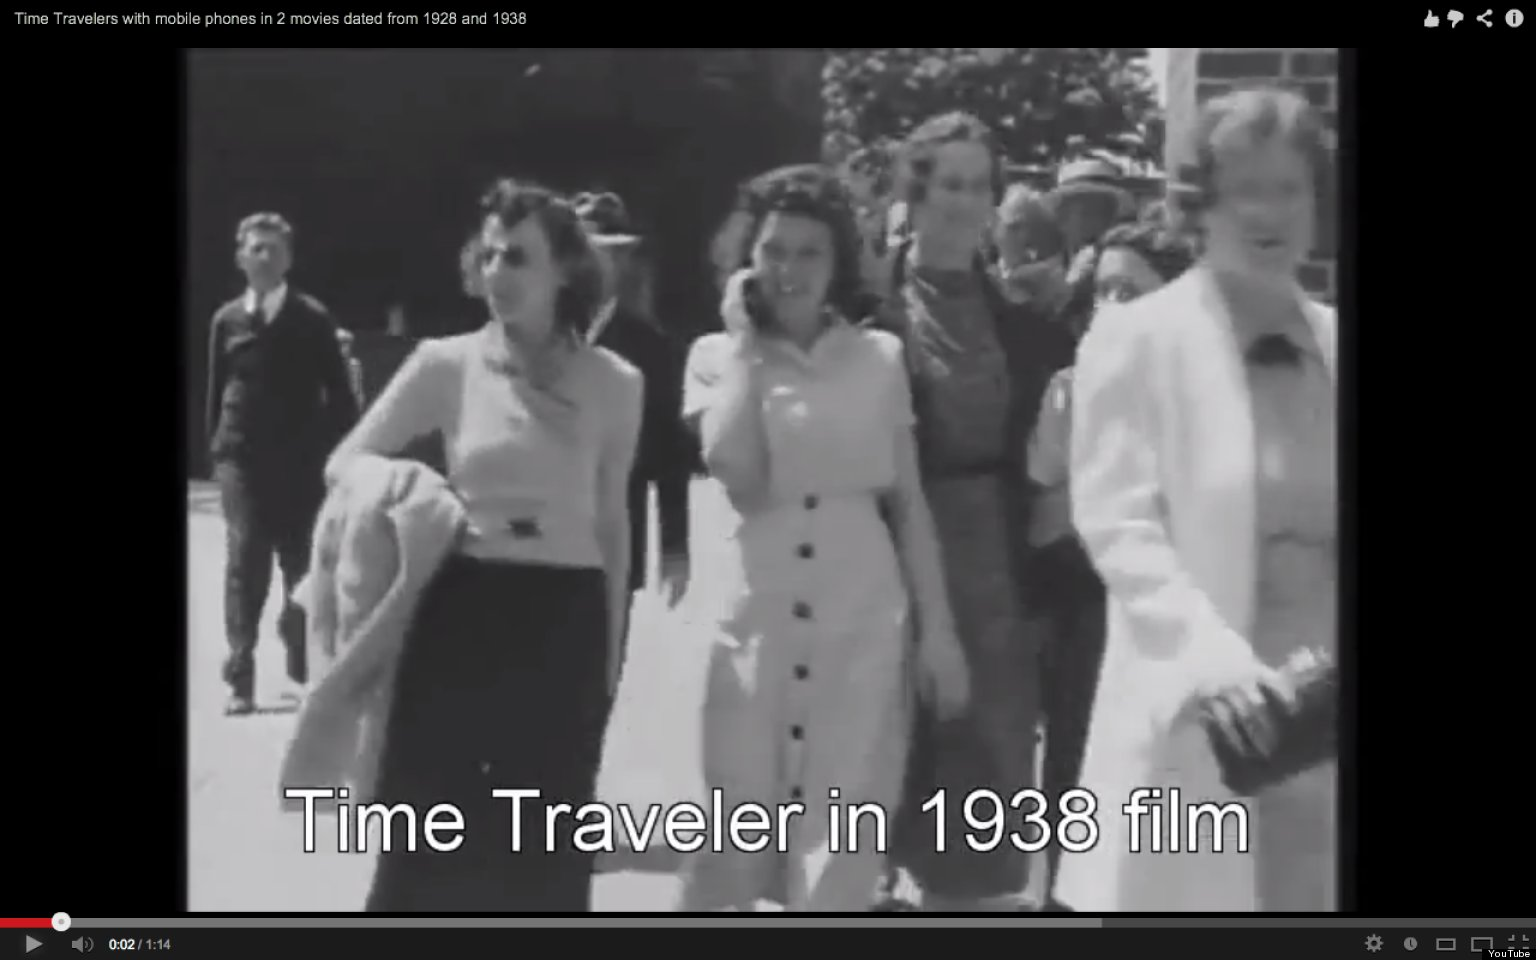 Mystery Of 1938 39;Time Traveler39; With Cell Phone Solved? VIDEO